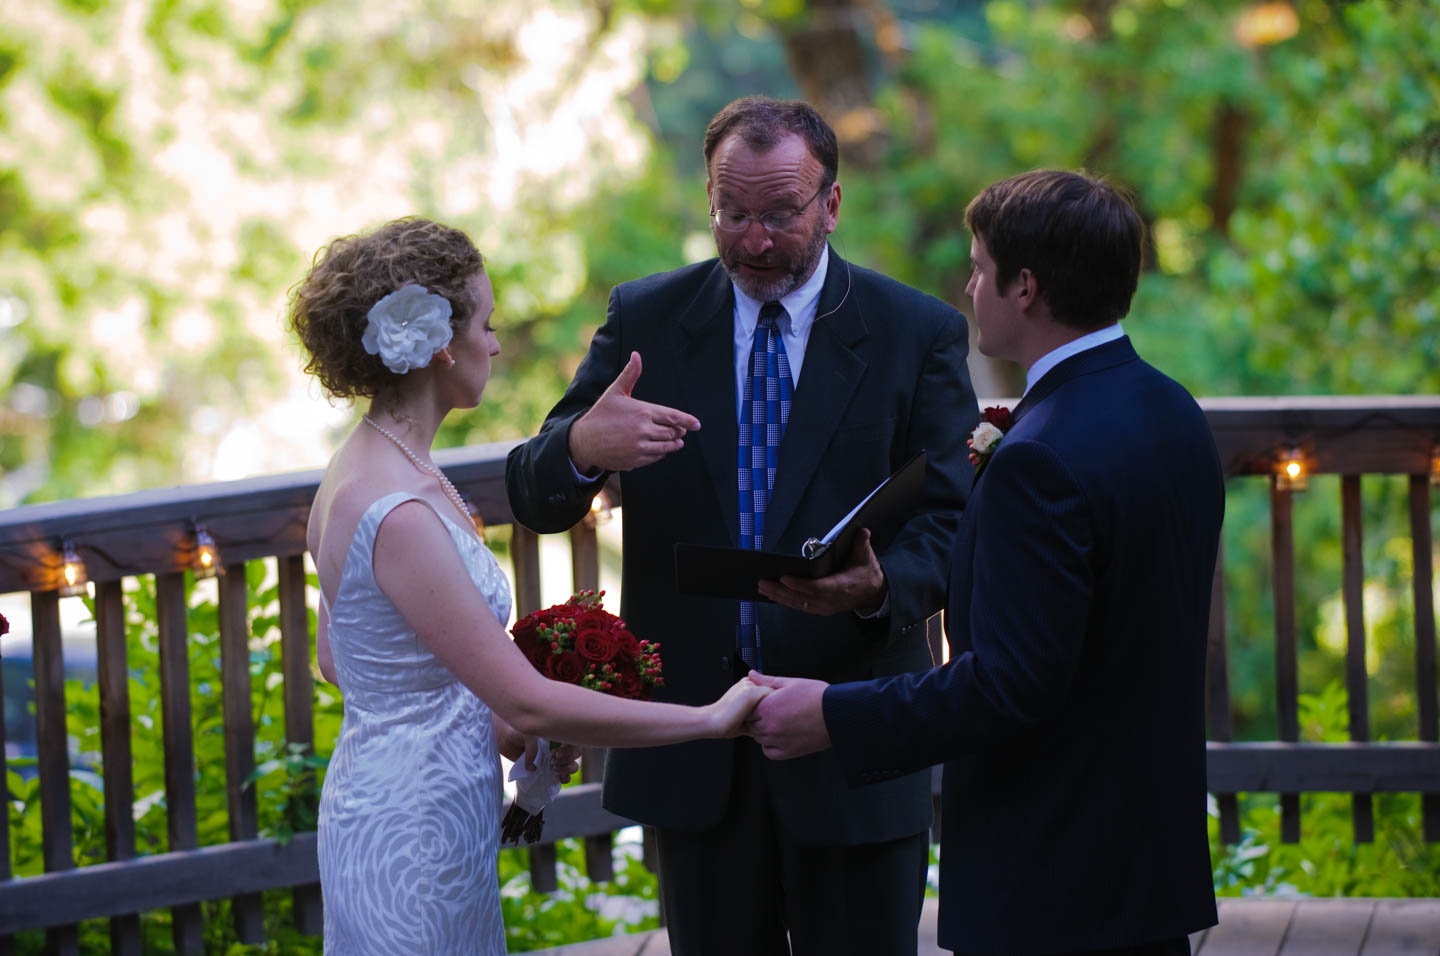 Wedding ceremony at Log Haven